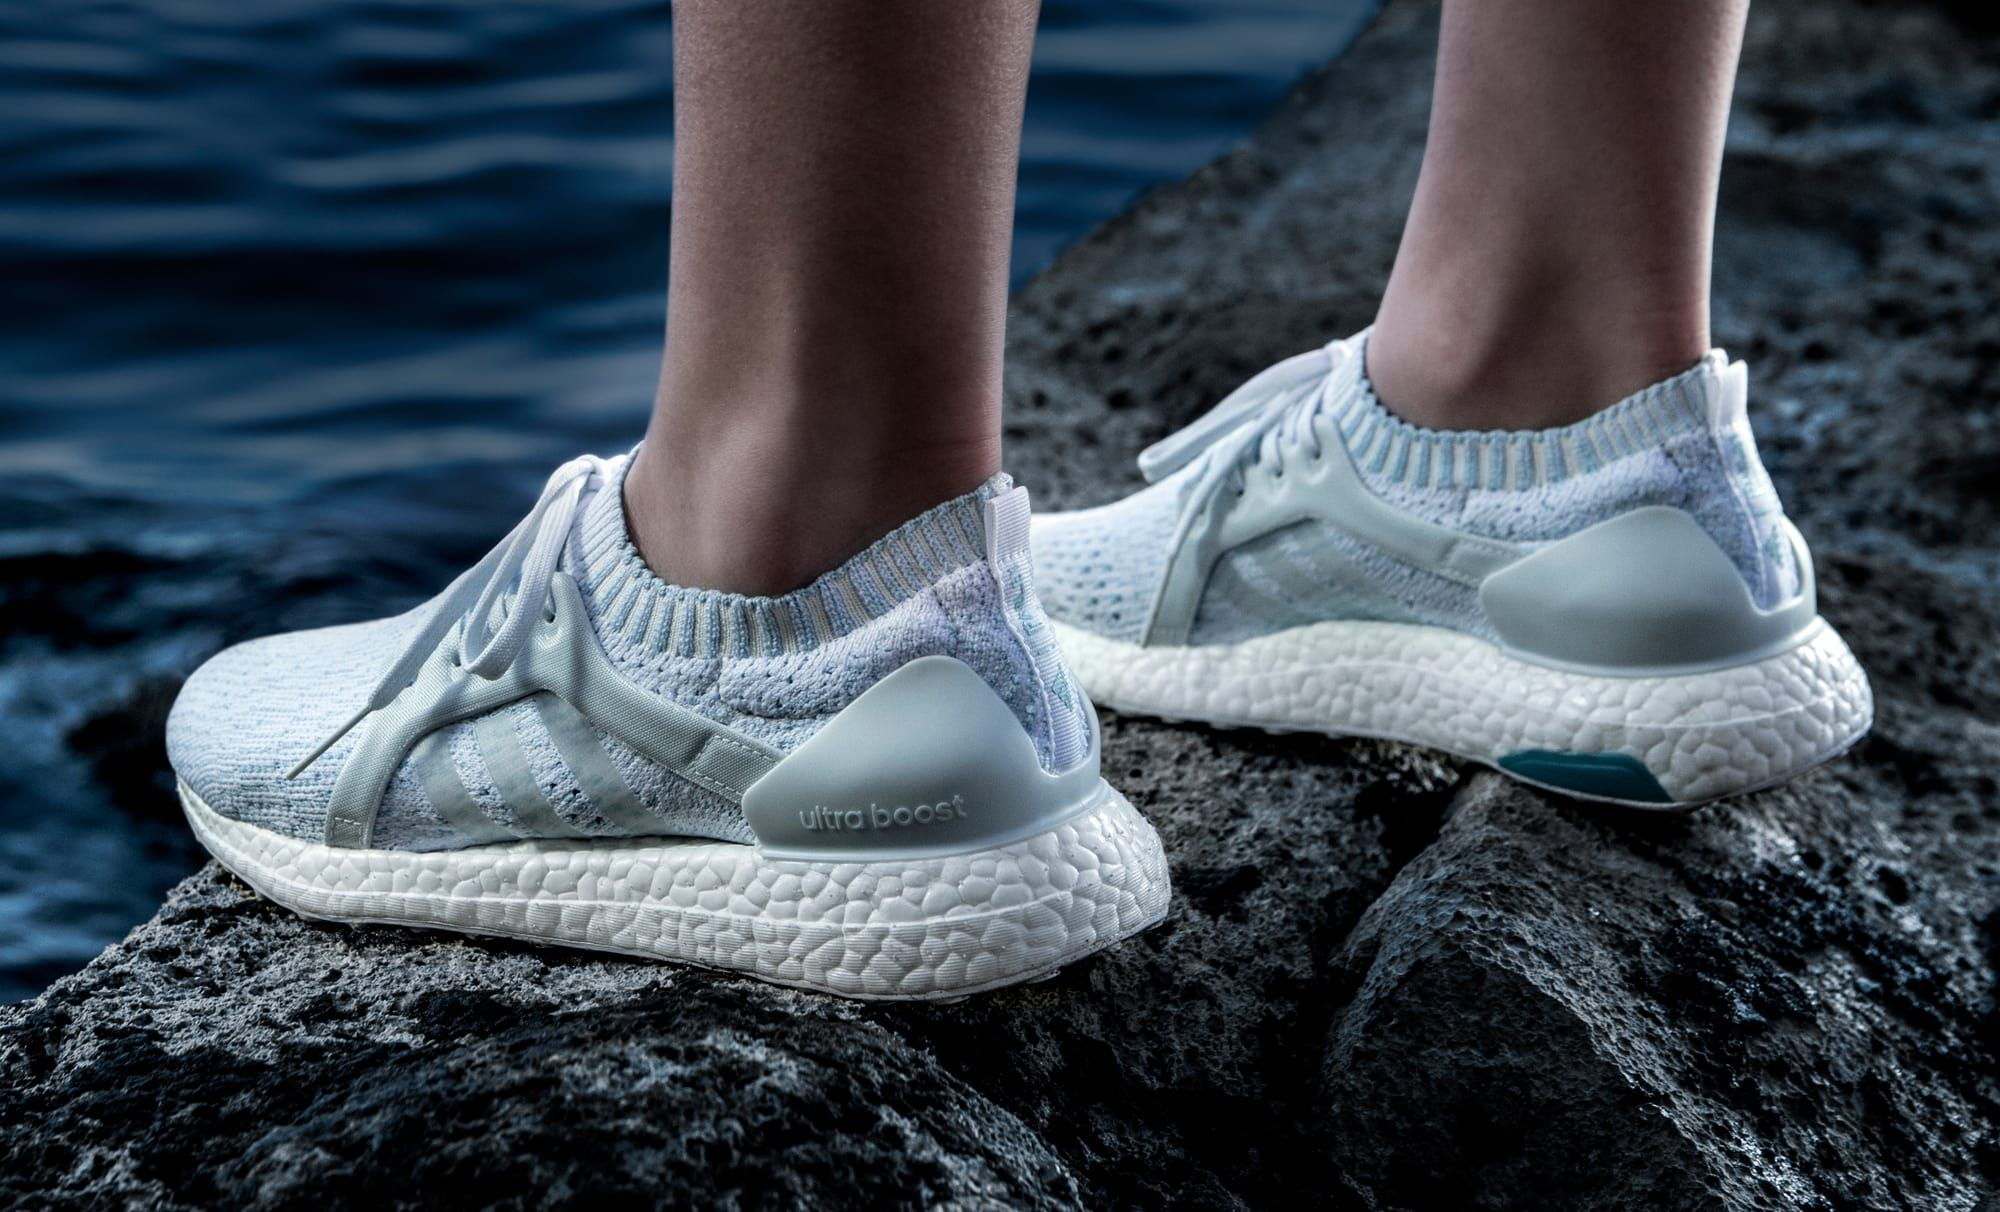 Adidas Ultra Boost X Parley LTD (Women's)